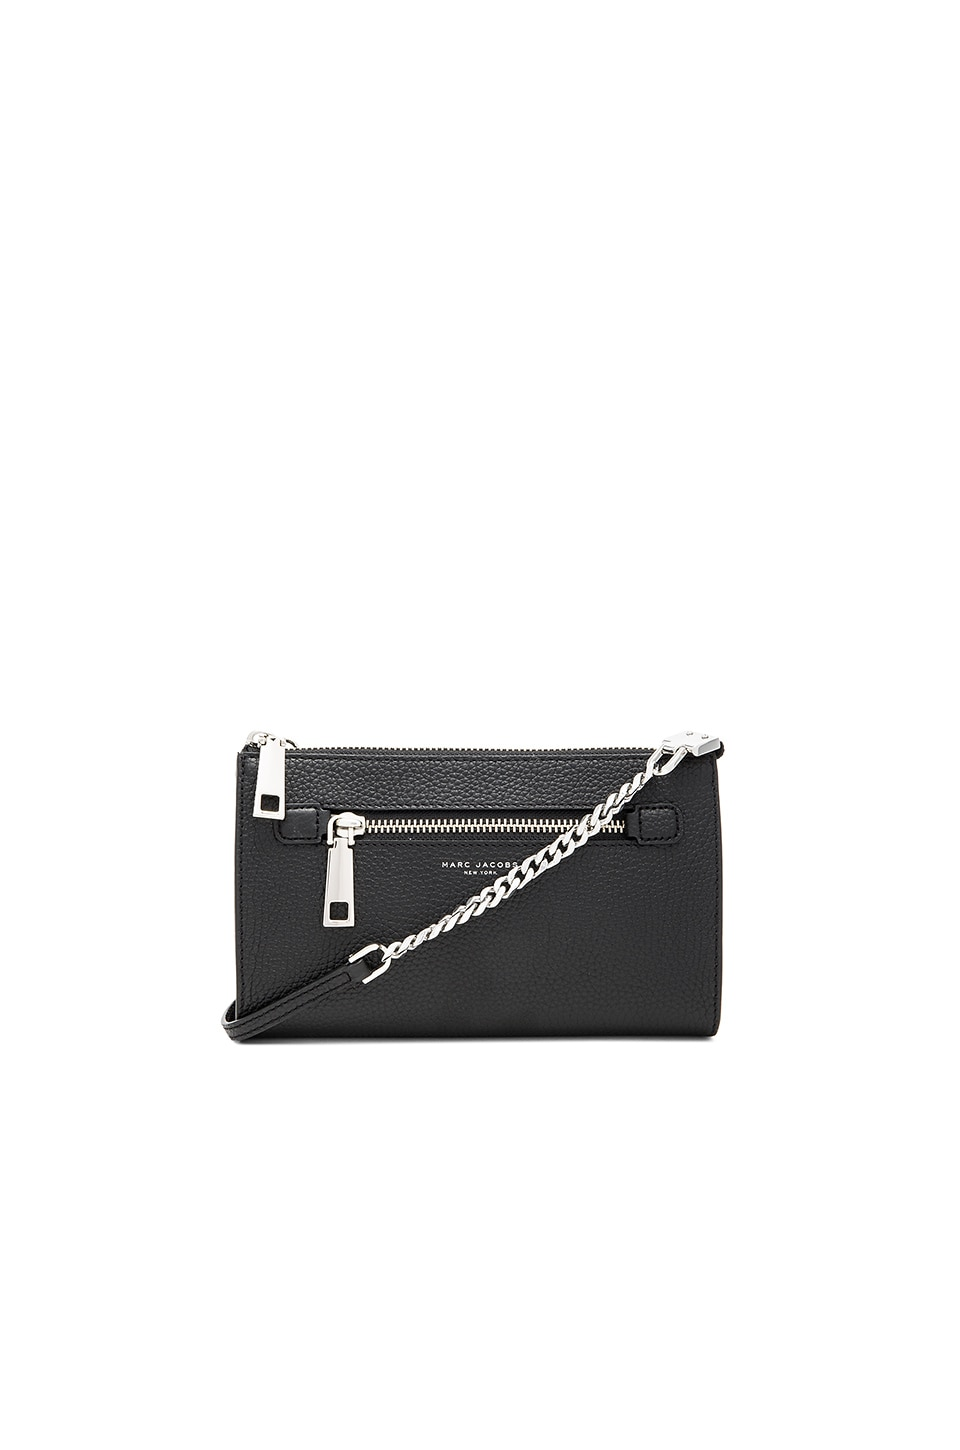 0187d78bb2ed Marc Jacobs Gotham Small Crossbody Bag in Black